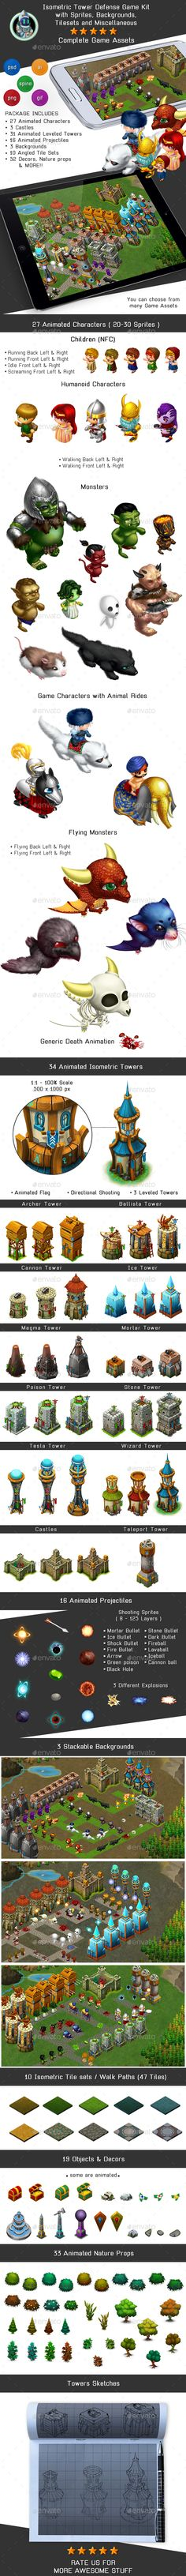 Isometric Tower Defense Game Kit Pack - Sprites, Backgrounds - #Game Kits Game Assets Download here: https://graphicriver.net/item/isometric-tower-defense-game-kit-pack-sprites-backgrounds/16958247?ref=alena994